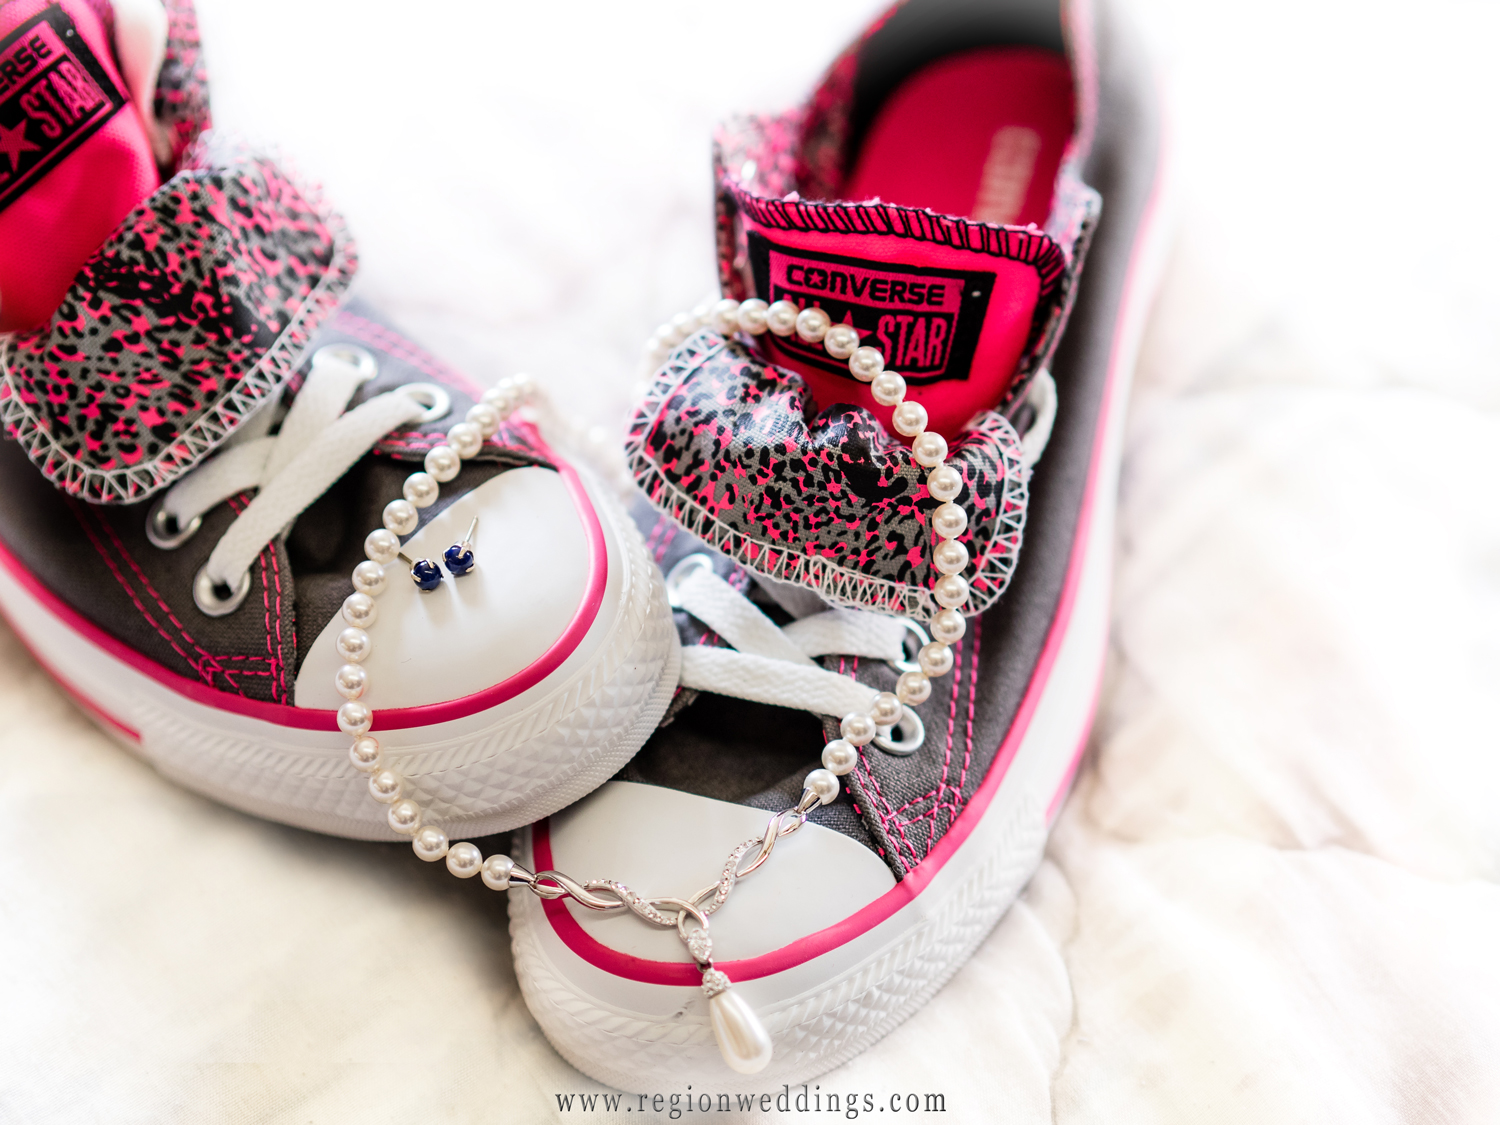 The bride's shoes are pink Converse All Star sneakers decorated with her wedding jewelry.